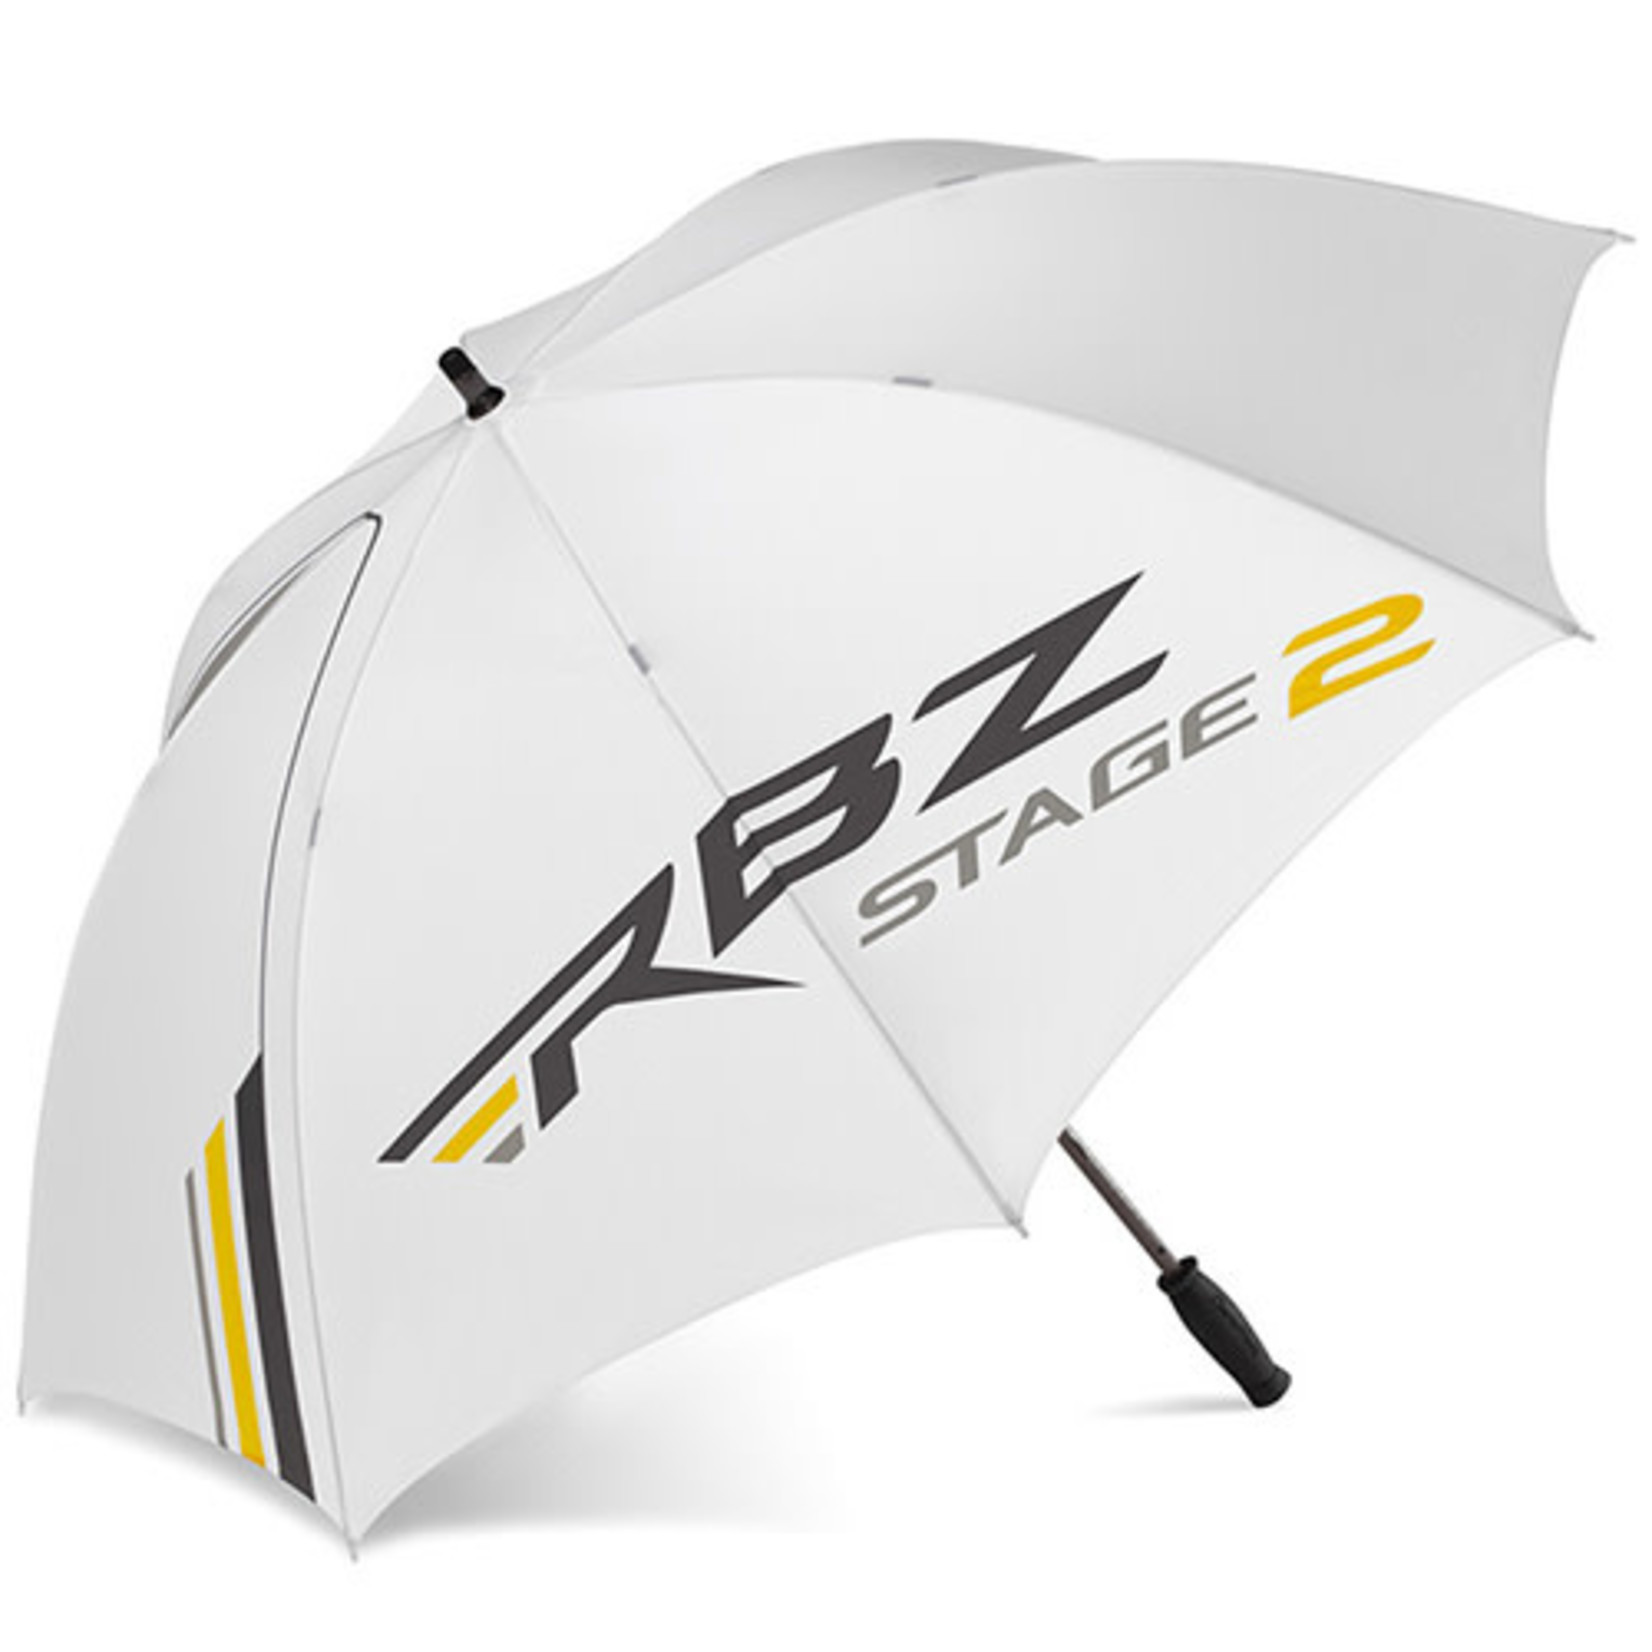 Taylor Made Taylormade TBZ Stage 2 Umbrella